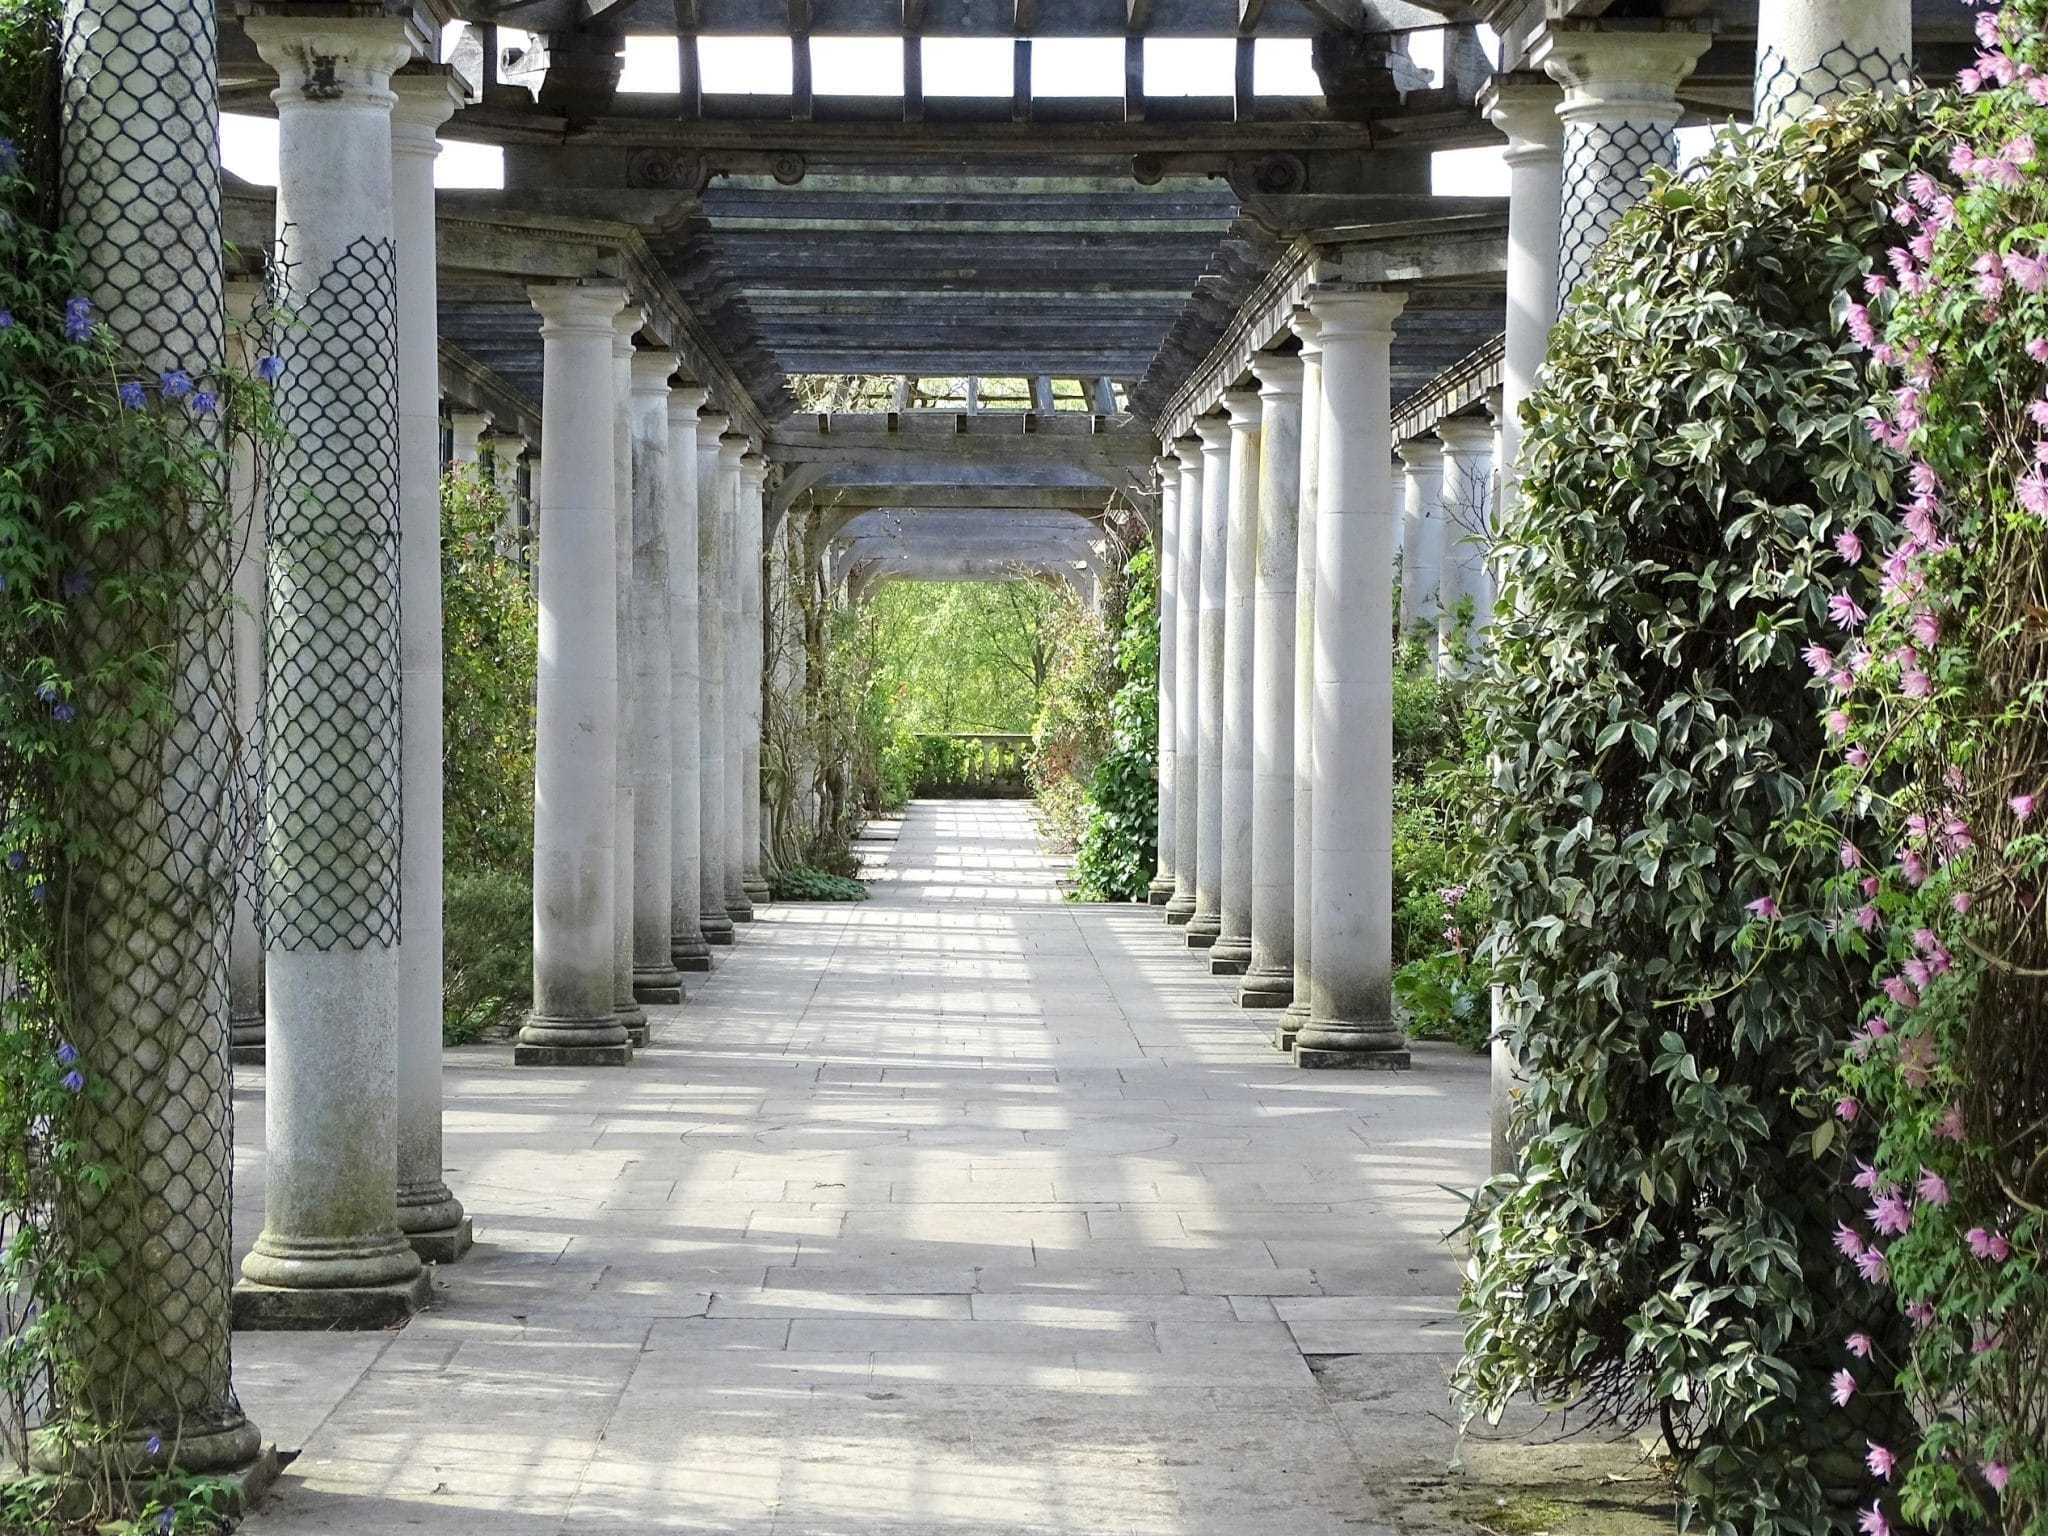 The Hill Garden and Pergola, Hampsstead